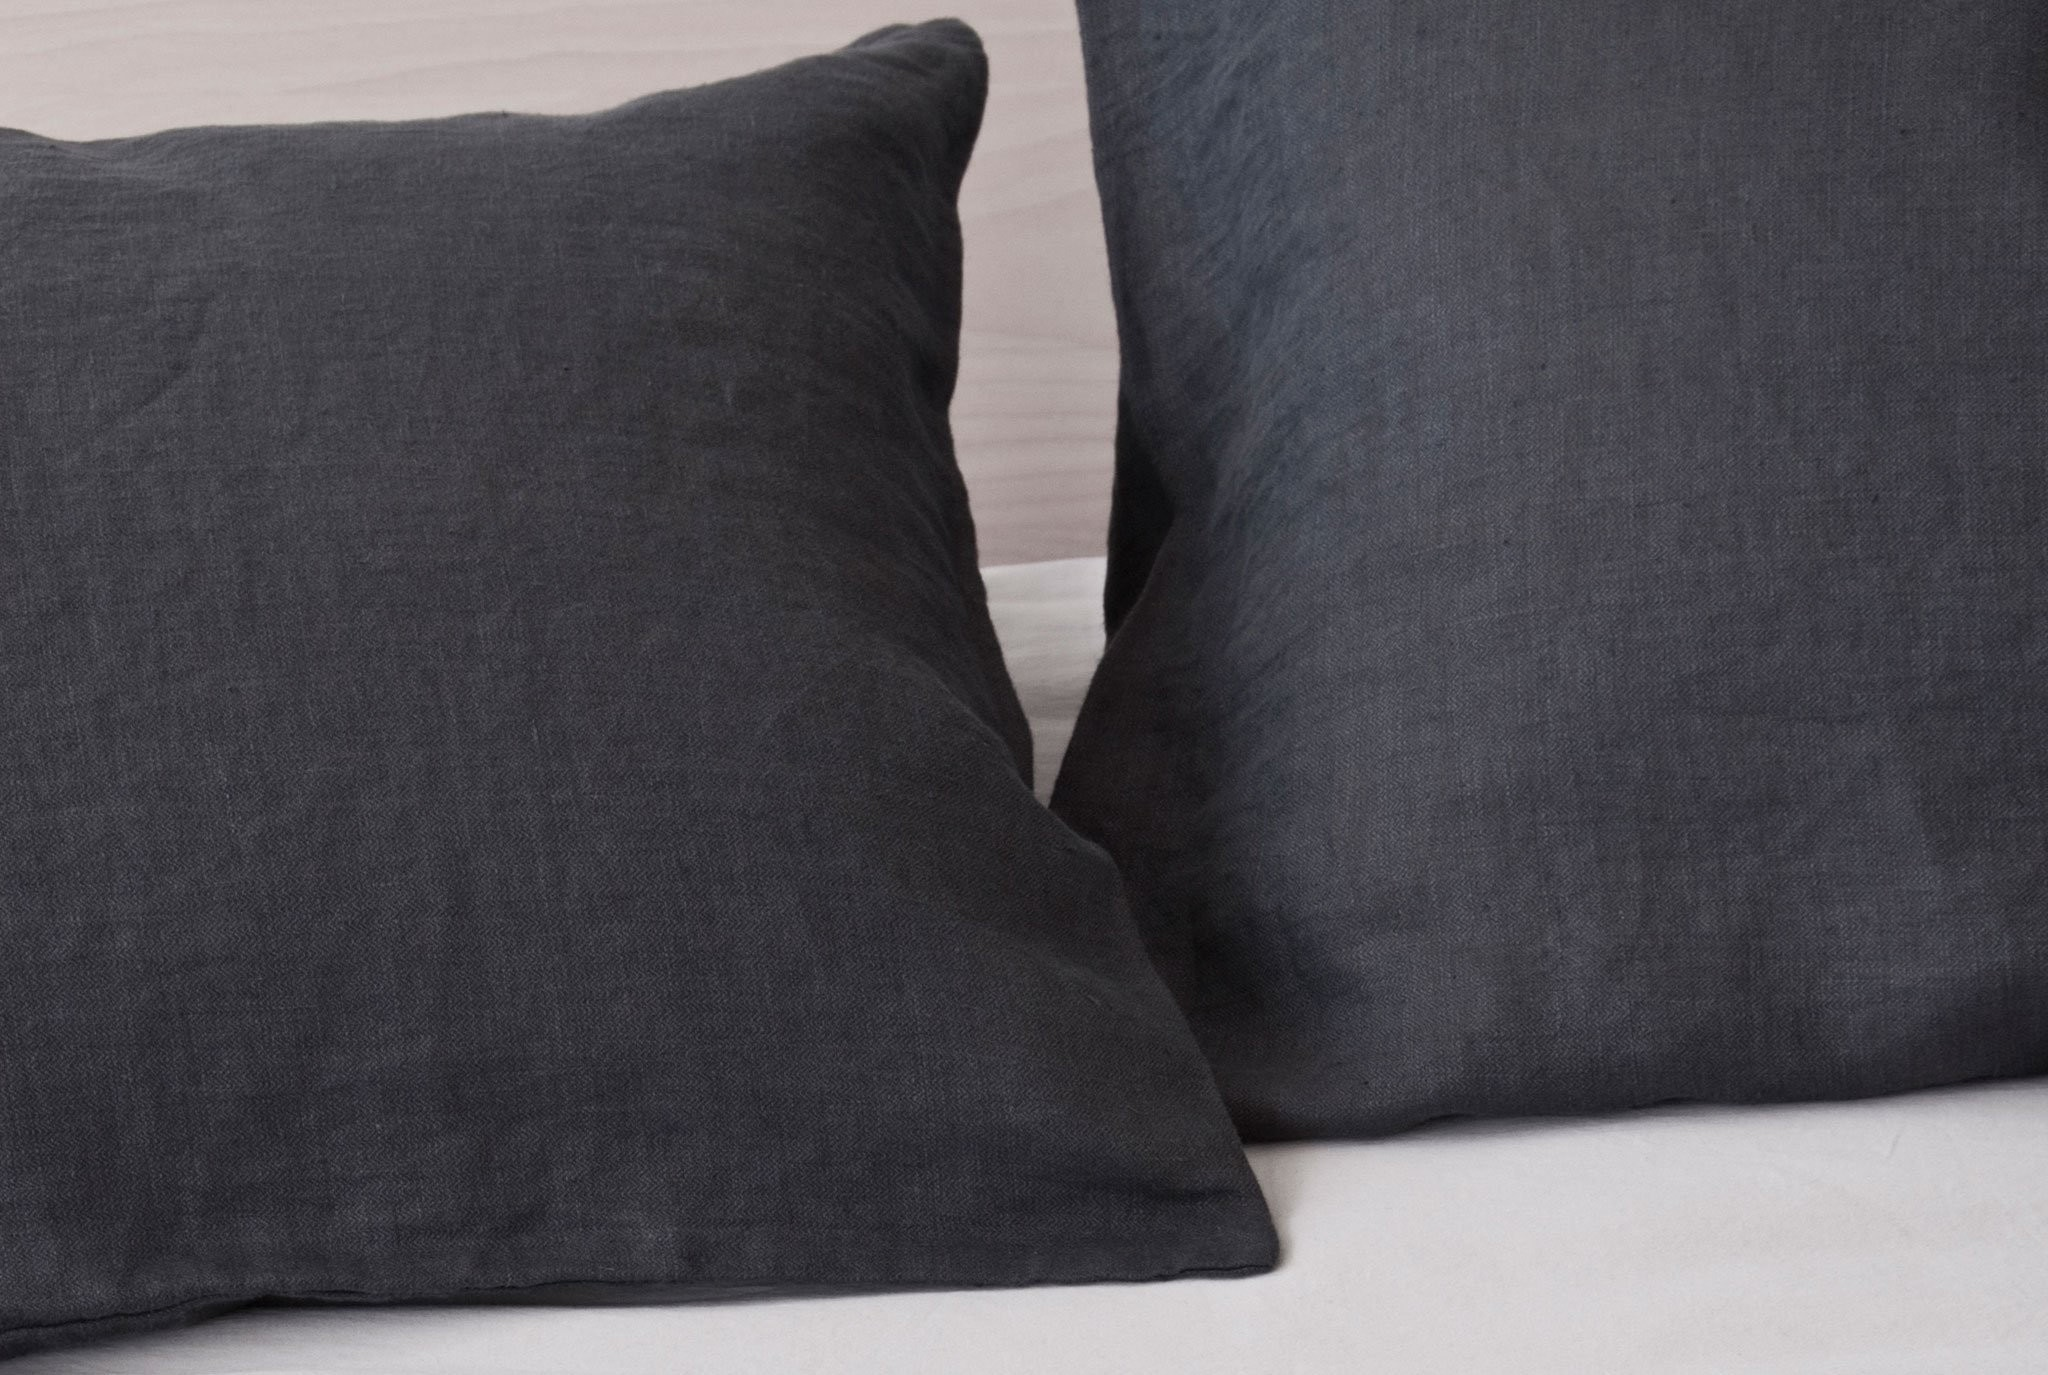 Area Bedding Camille Pillow Cases